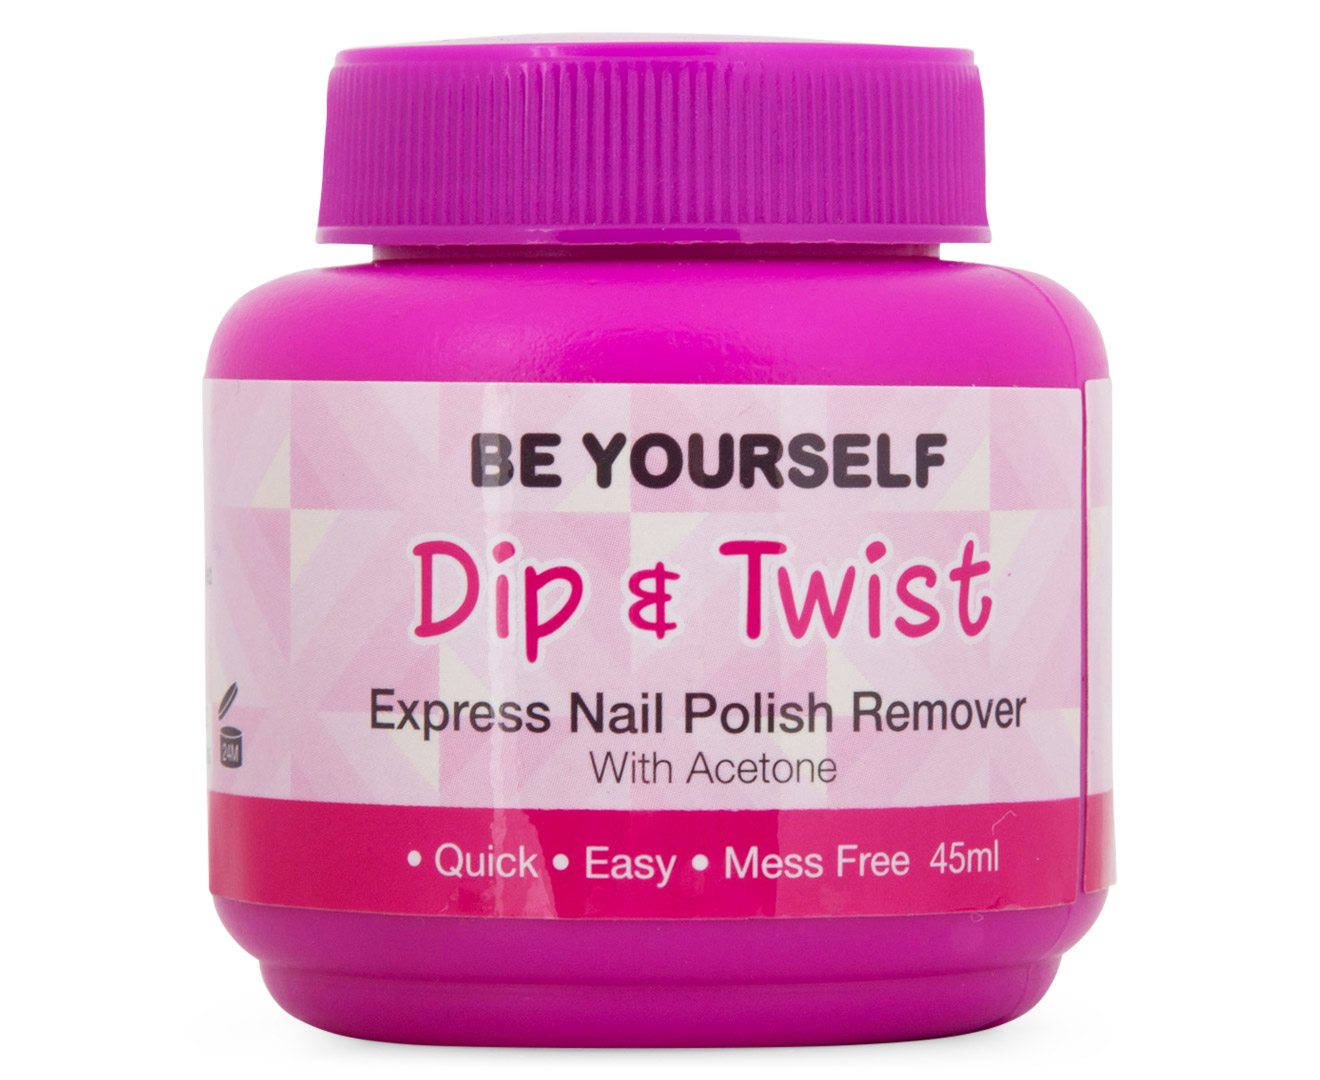 Be yourself dip twist express nail polish remover 45ml catch solutioingenieria Images